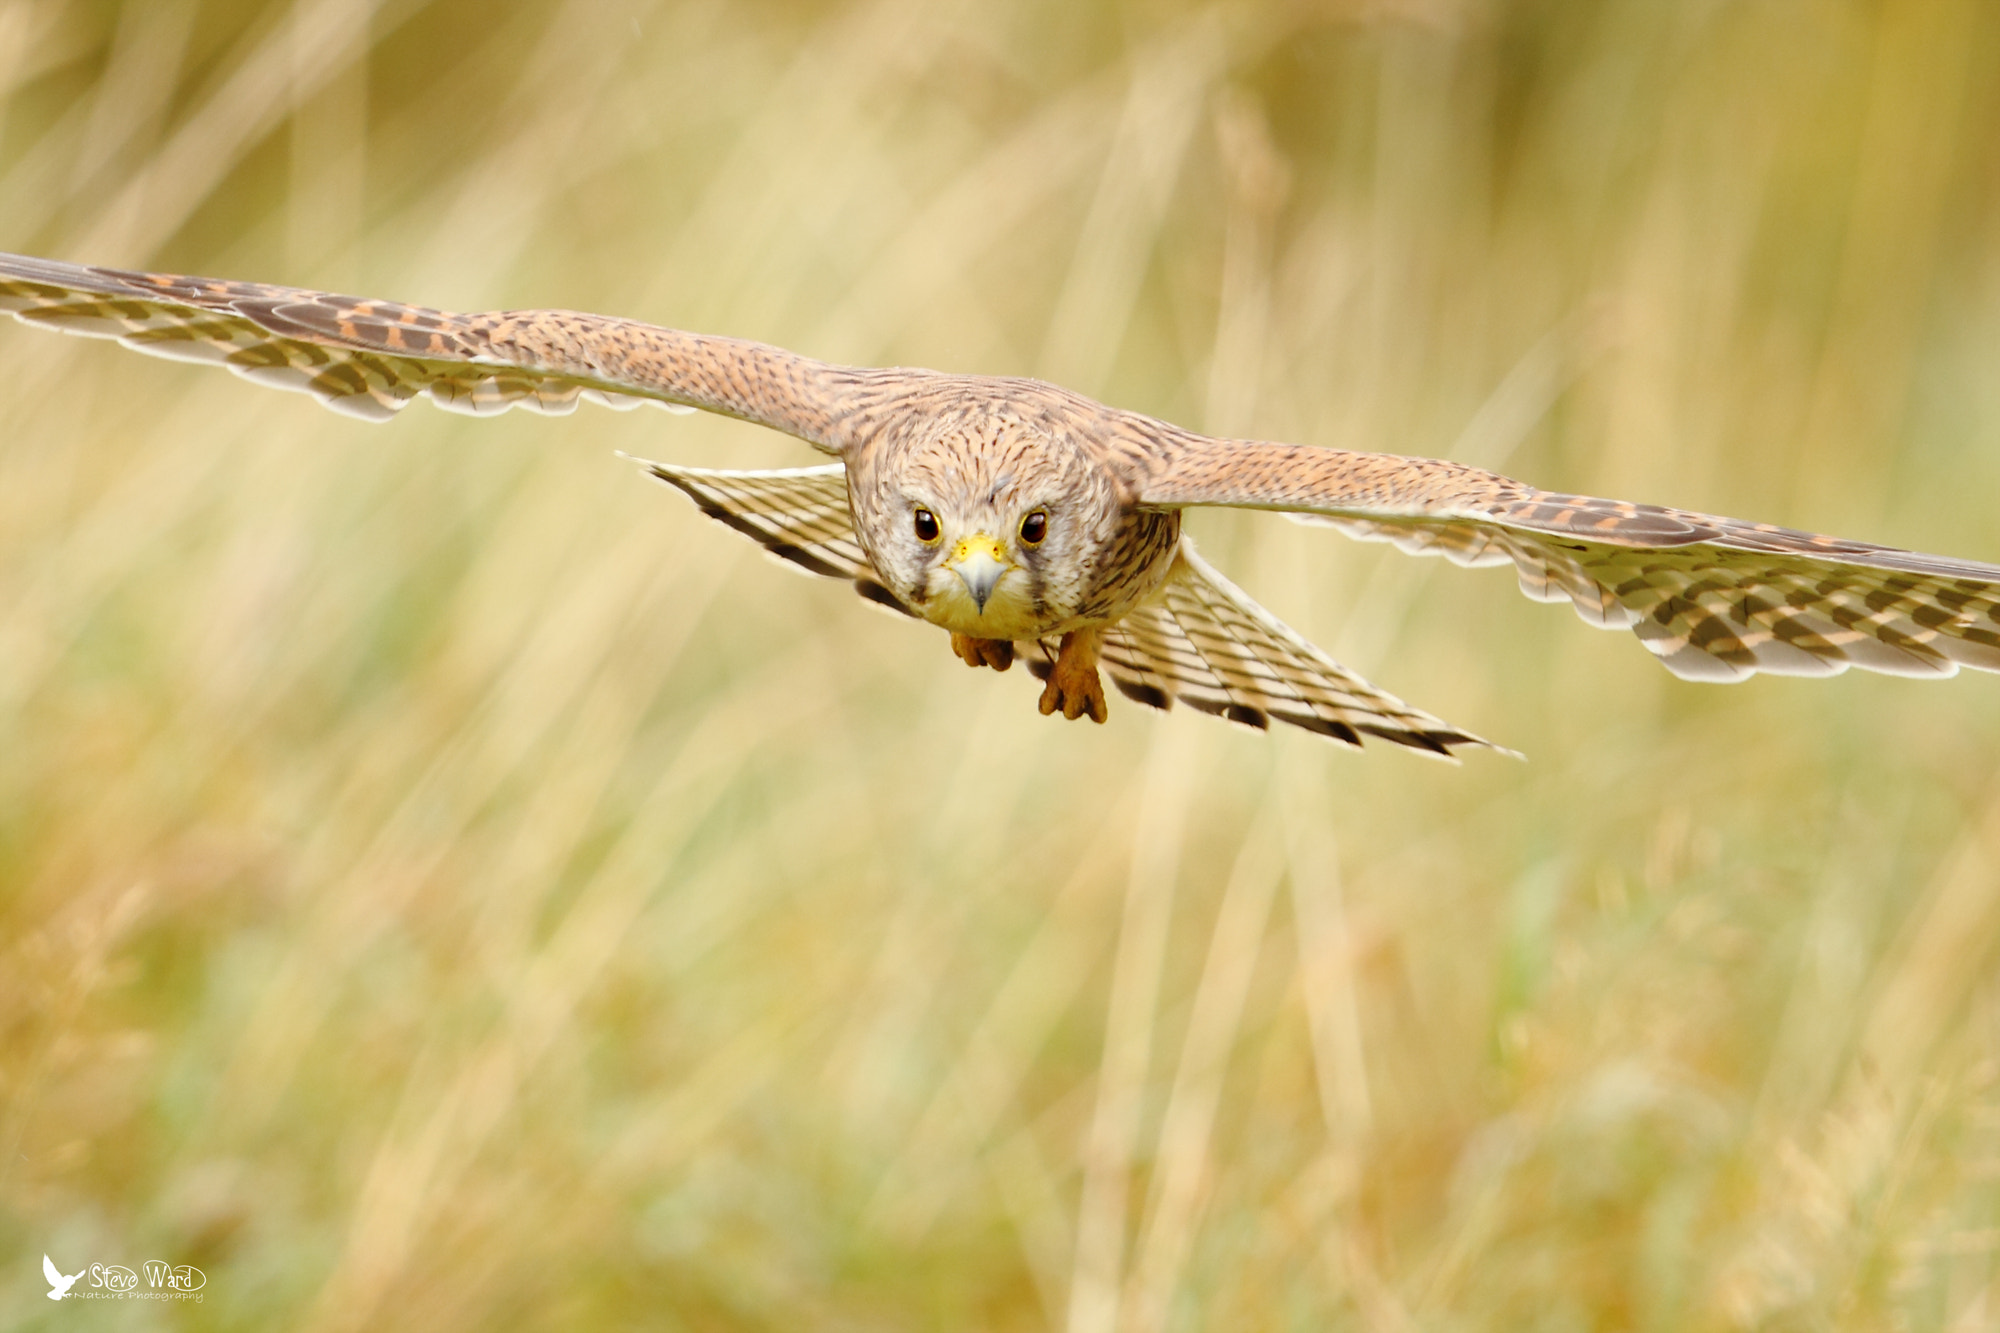 Photograph It's between me and the Kestrel by Steven Ward  on 500px